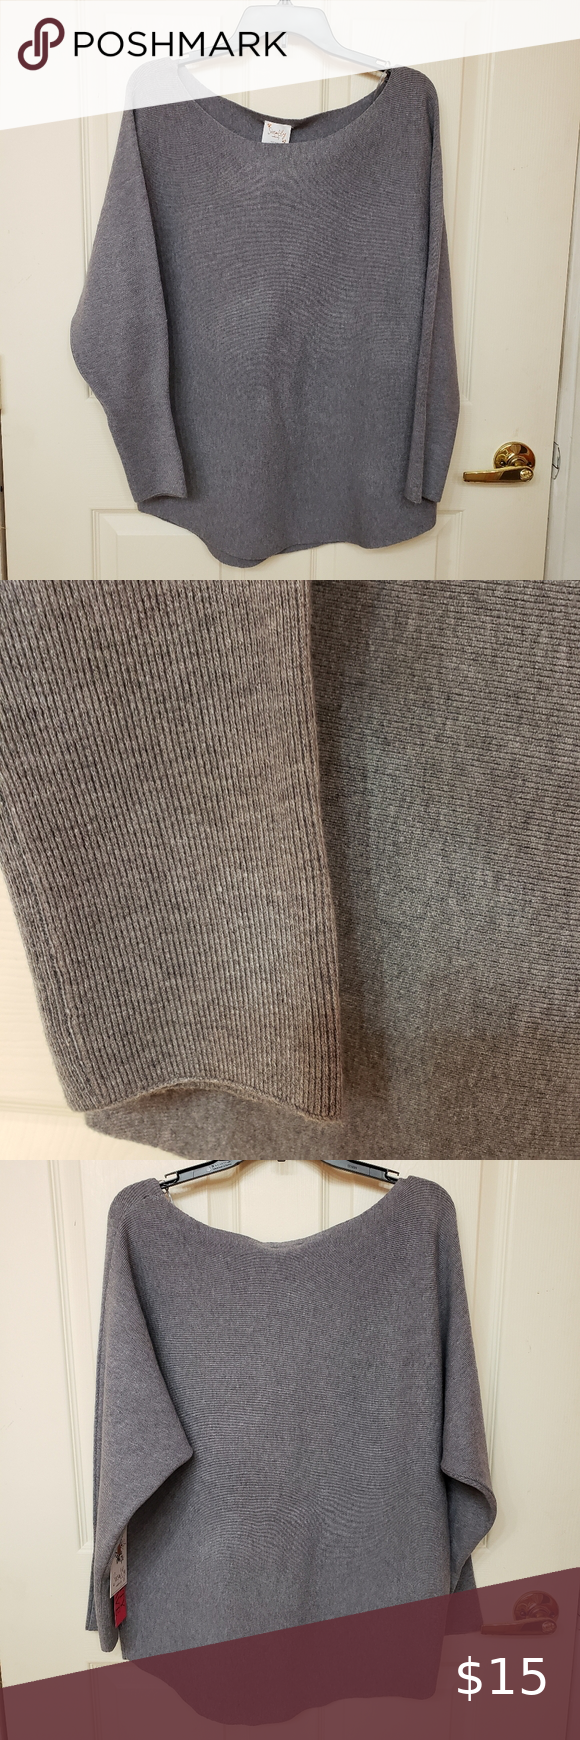 3 for $20 Siren Lily Maternity gray pullover Large Maternity must have Crew neck…  – Motherhood